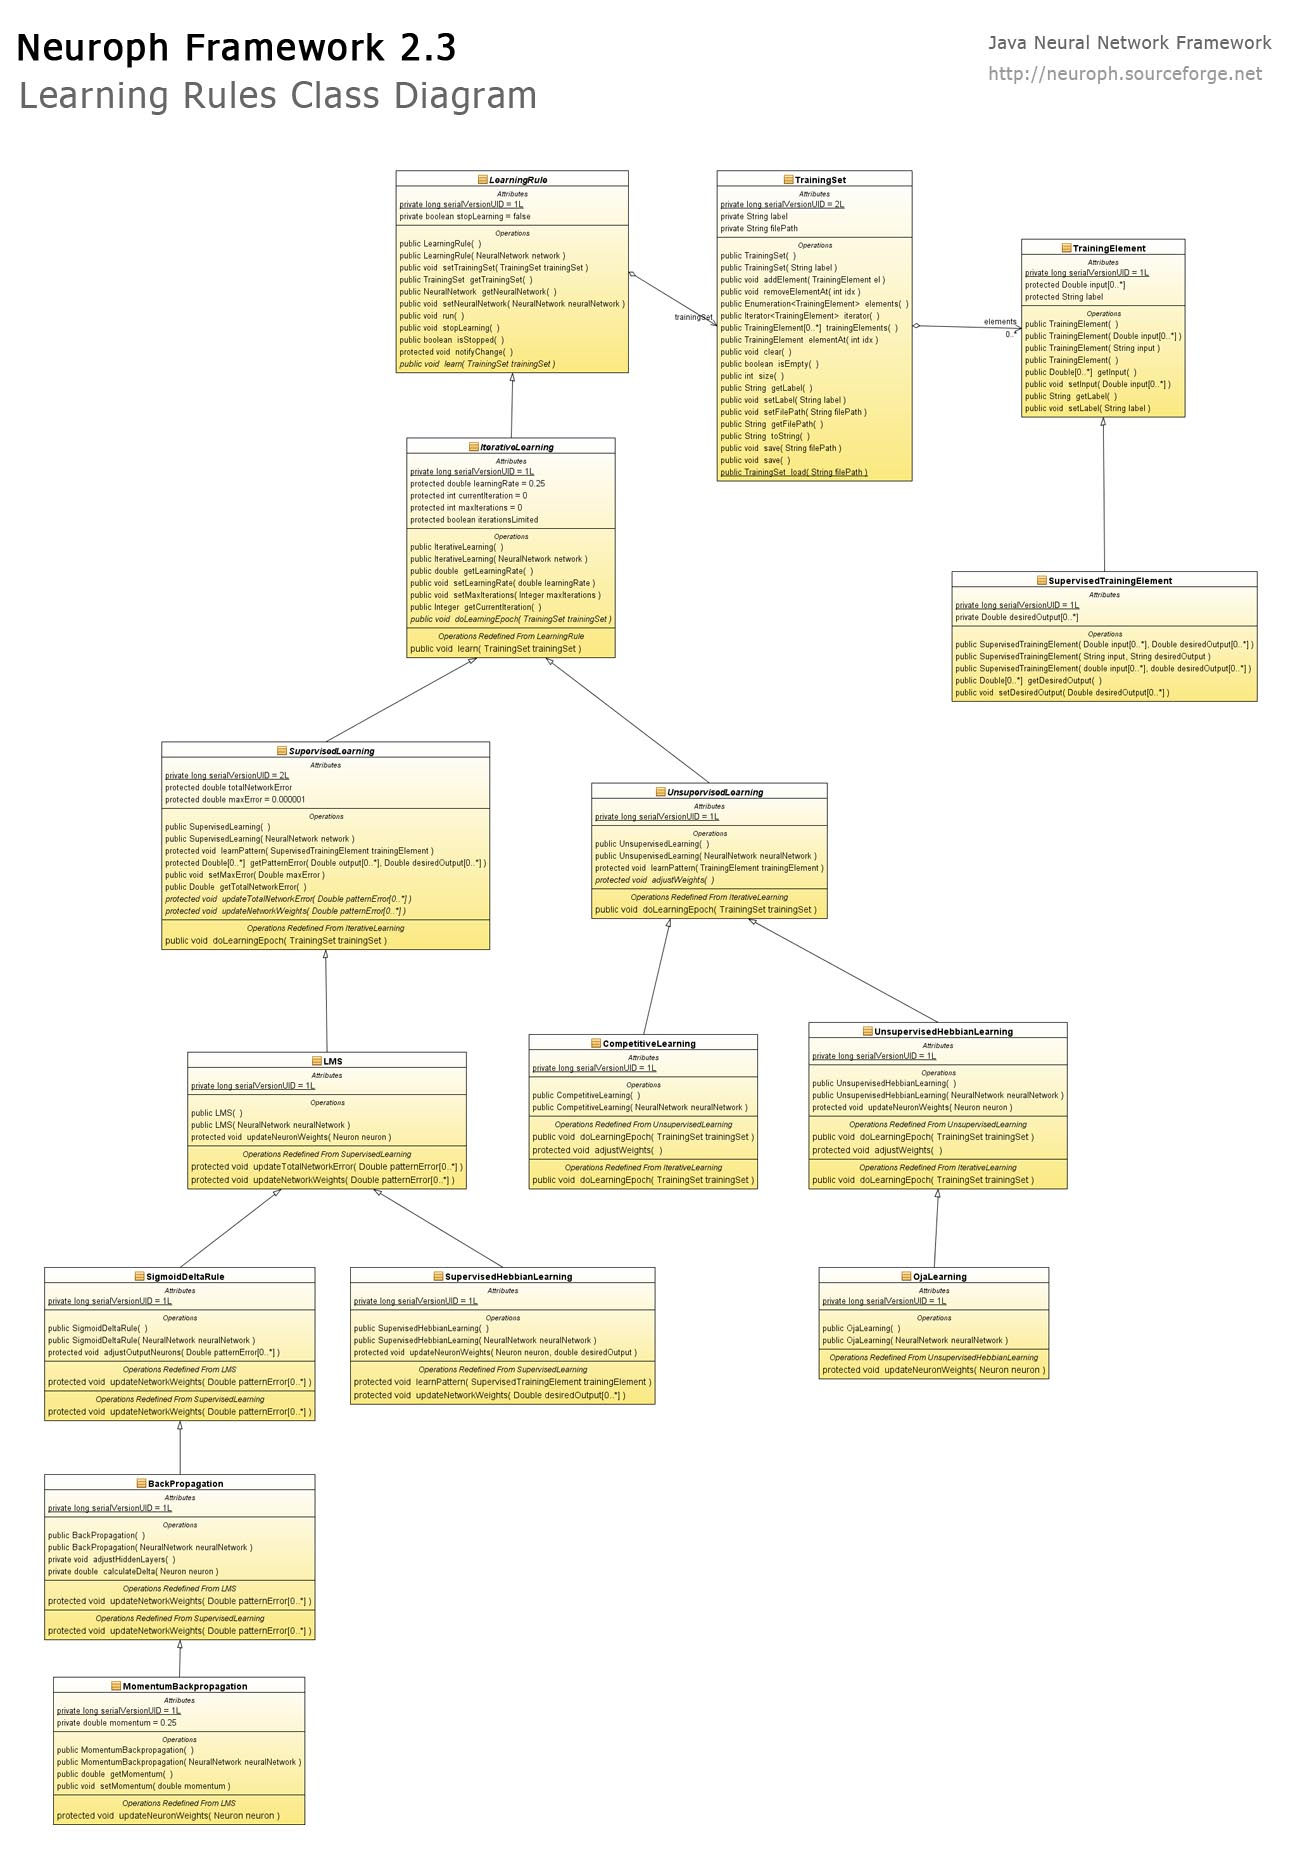 class diagram for library management system in uml three way wiring multiple lights diagrams tutorial pdf free engine image user